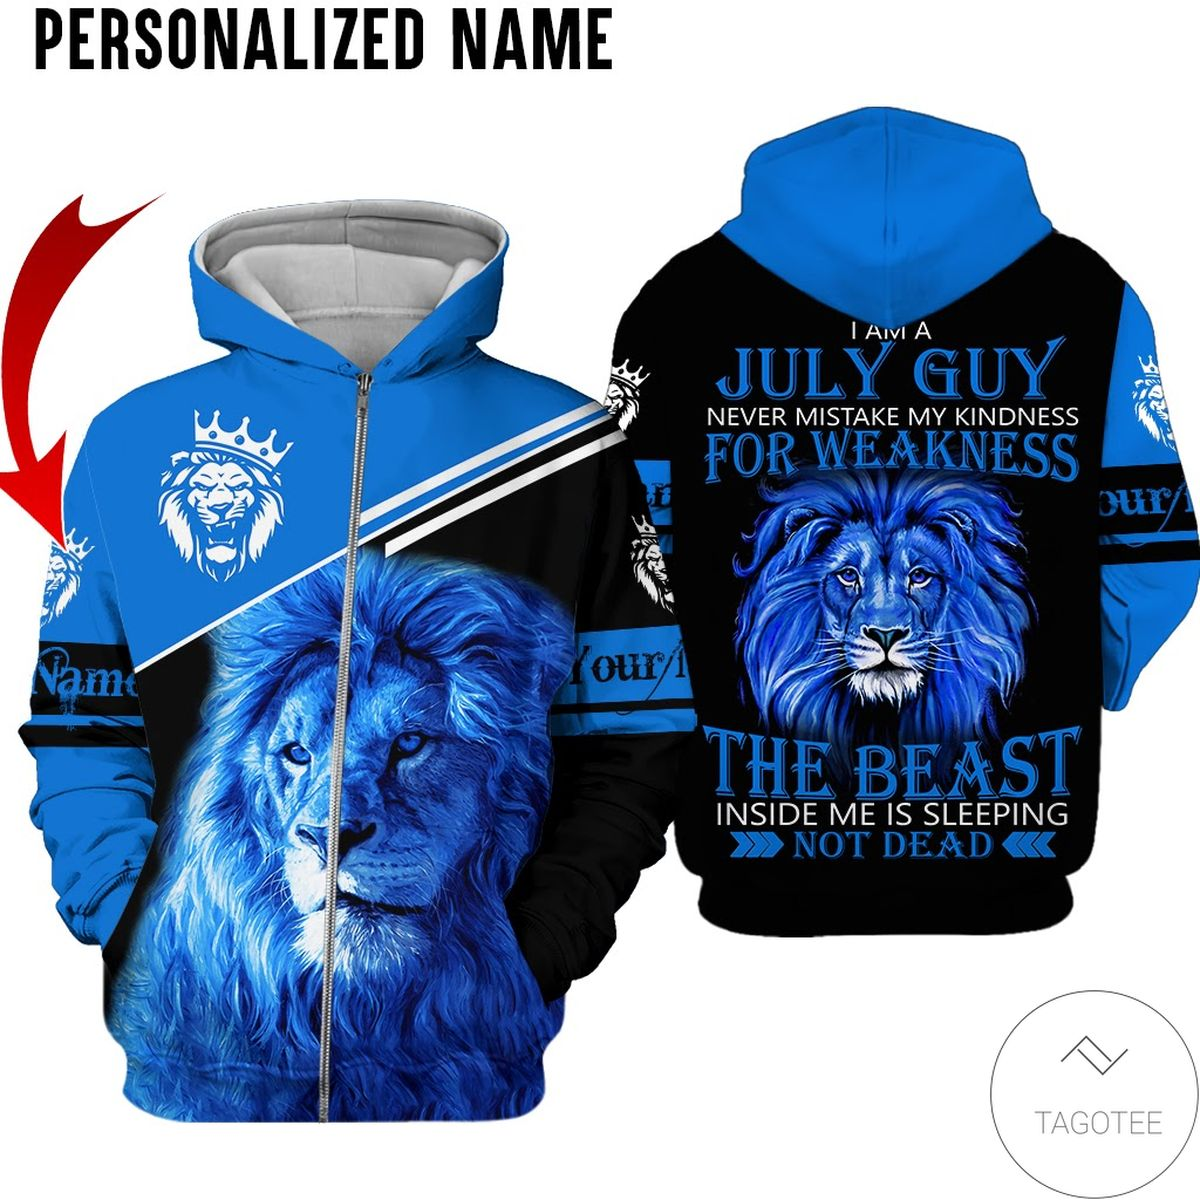 Personalized Name I'm July Guy The Beast Not Dead All Over Print Hoodiec